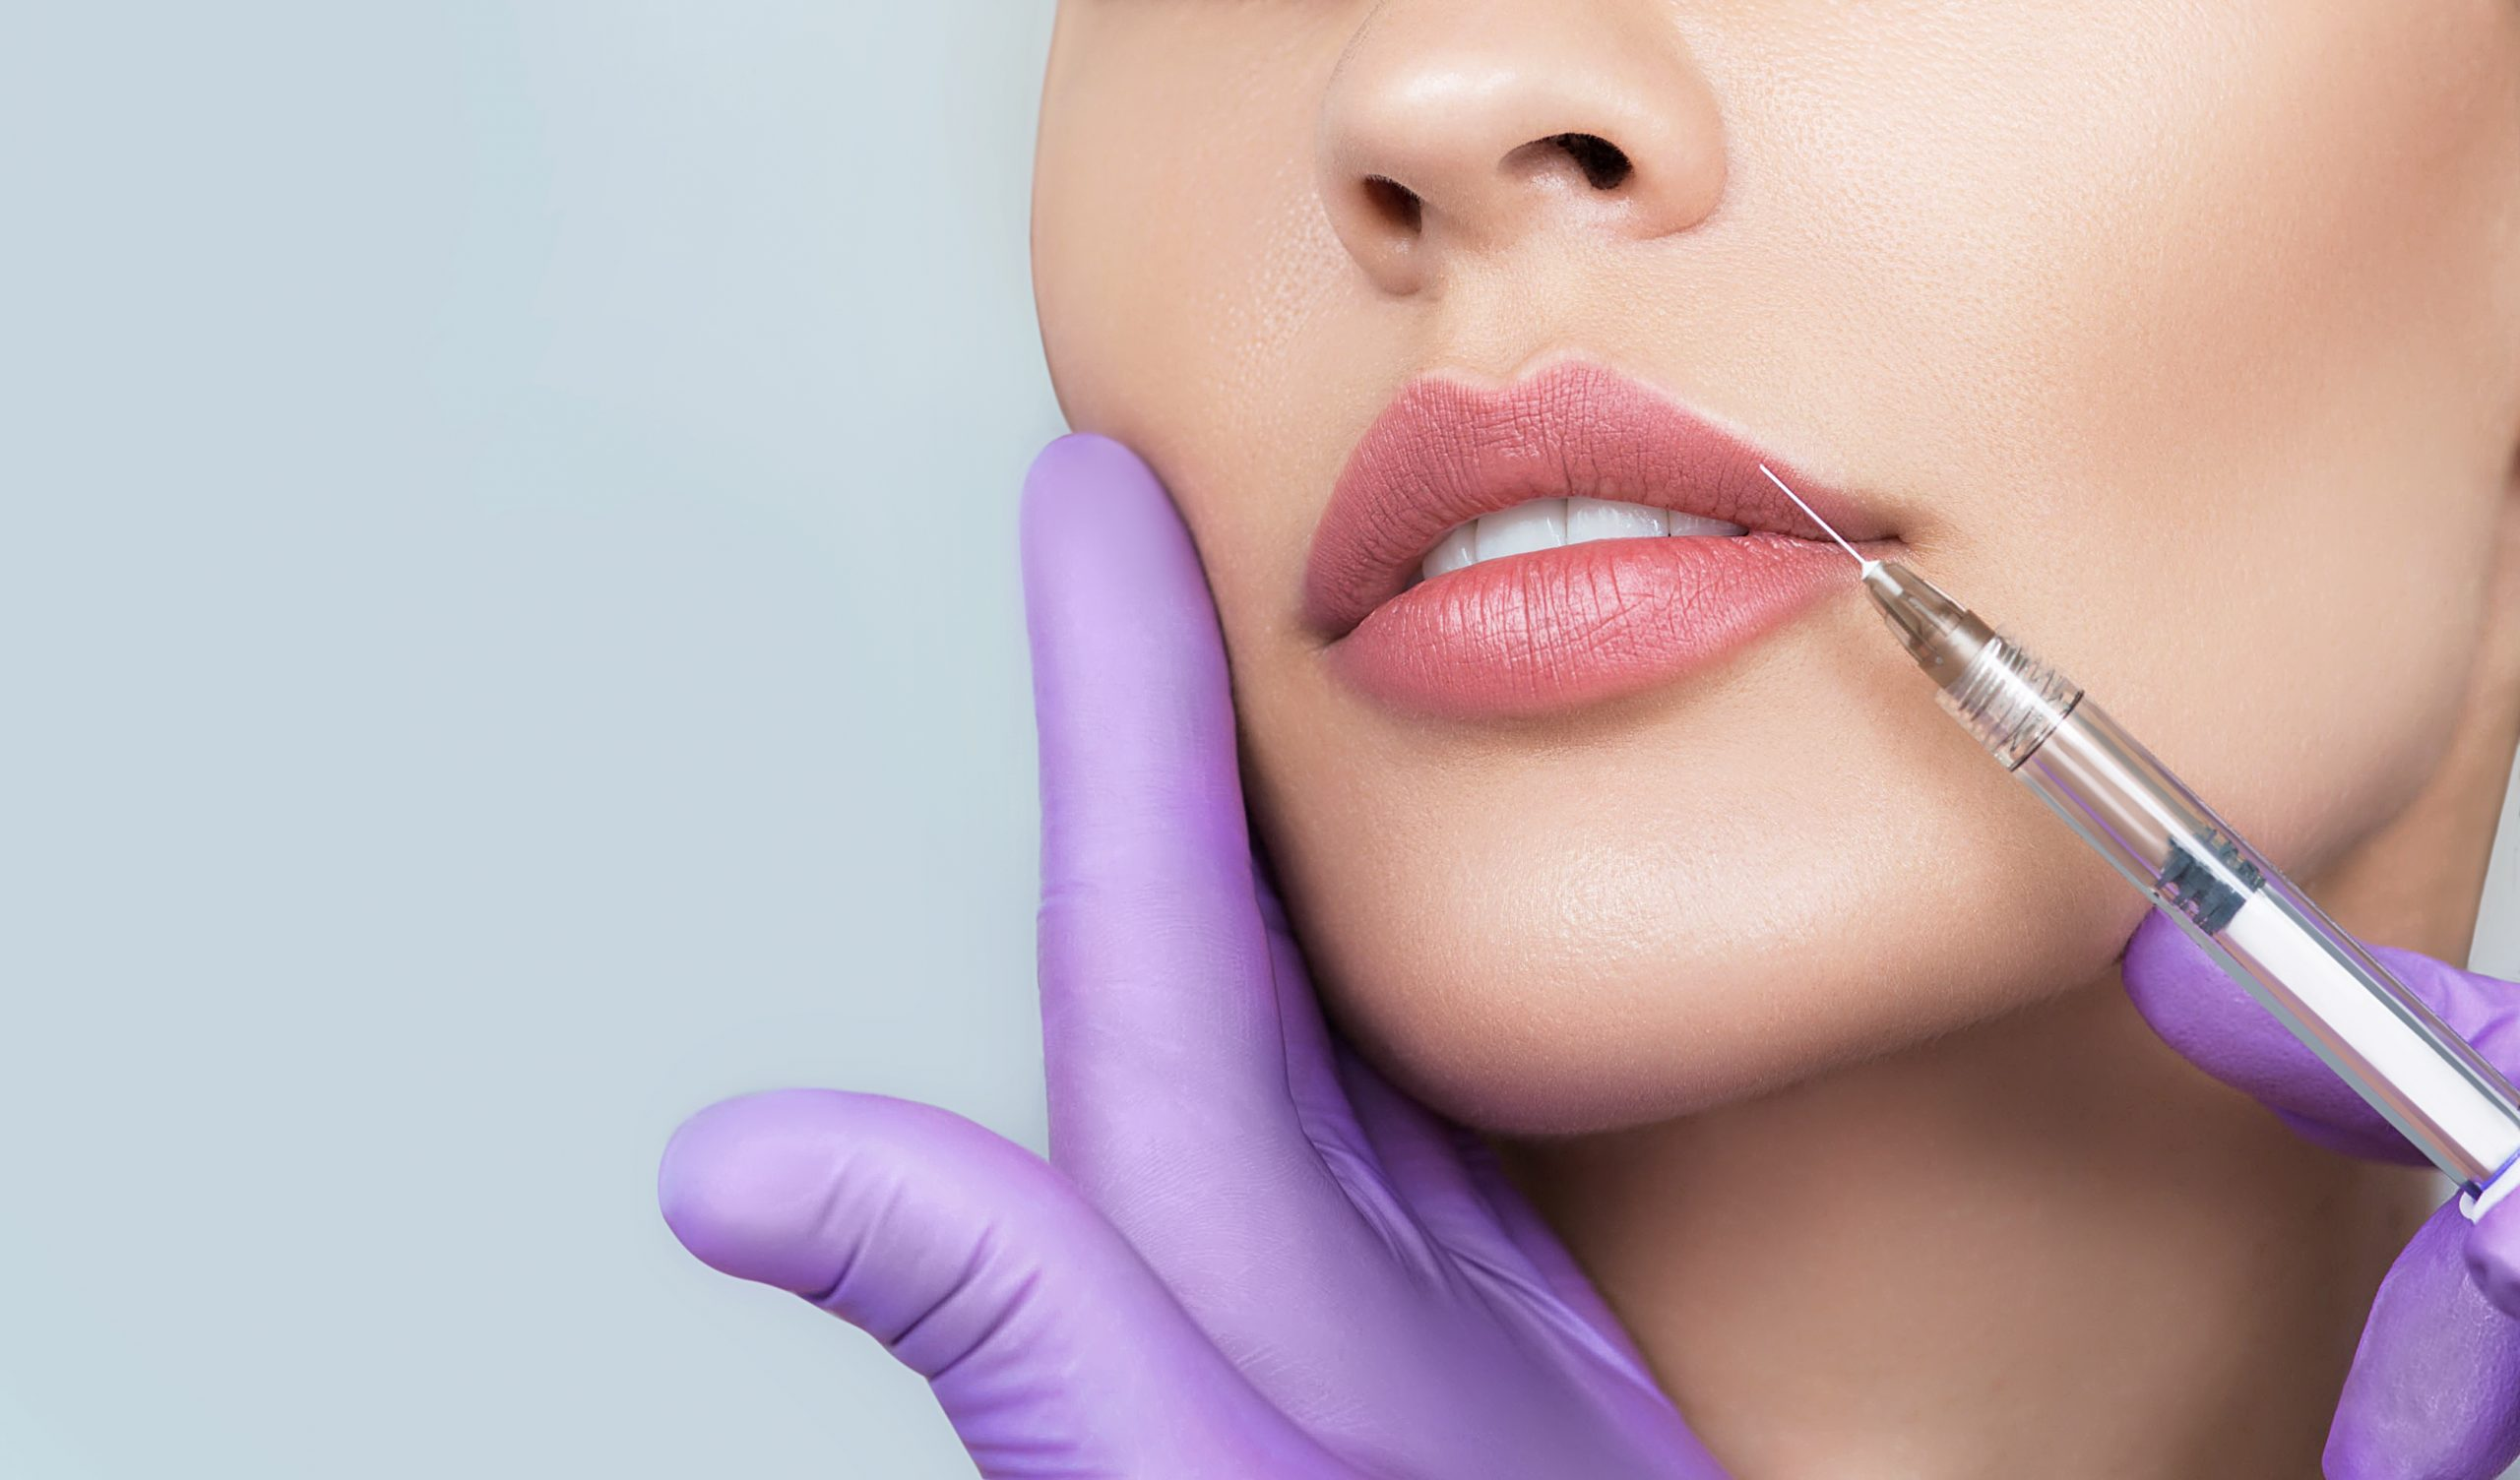 Syringe near woman's mouth, injections for increase lips shape